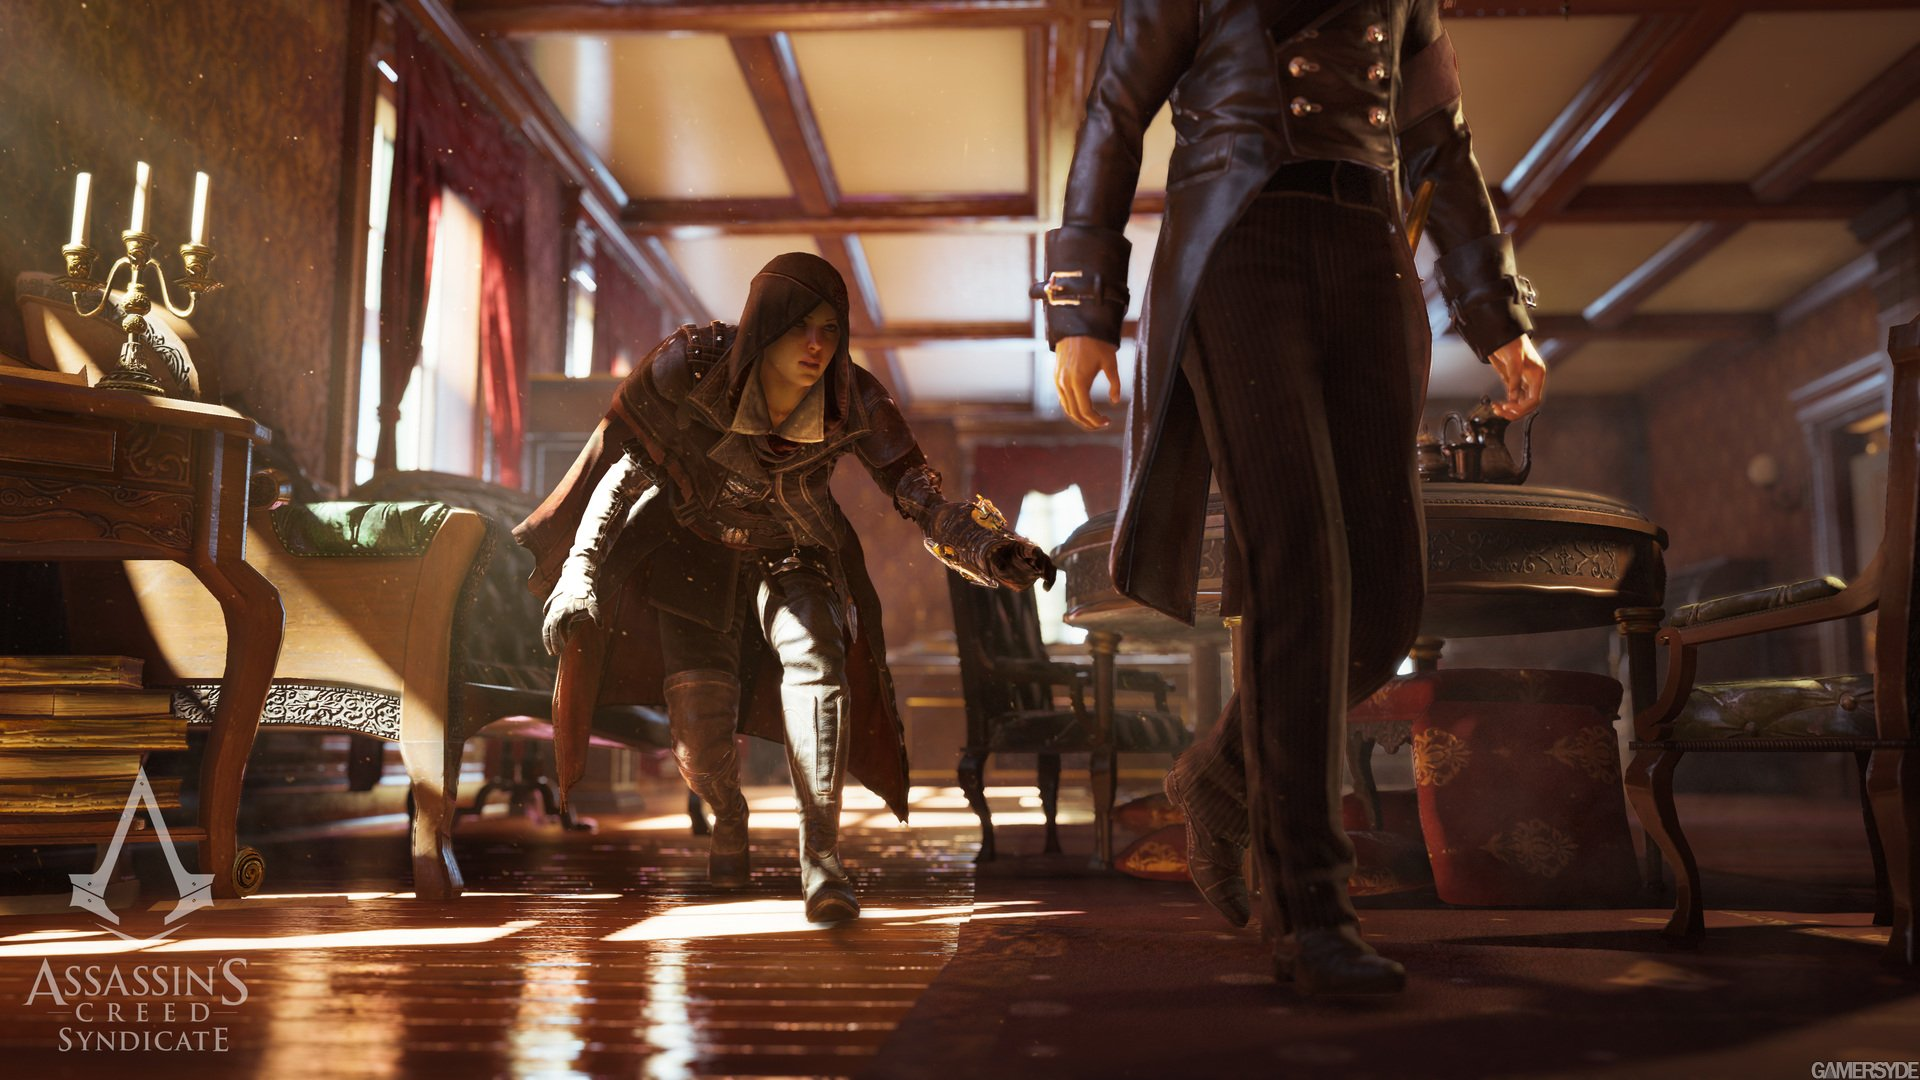 Assassin creed syndicate evie frye footjob